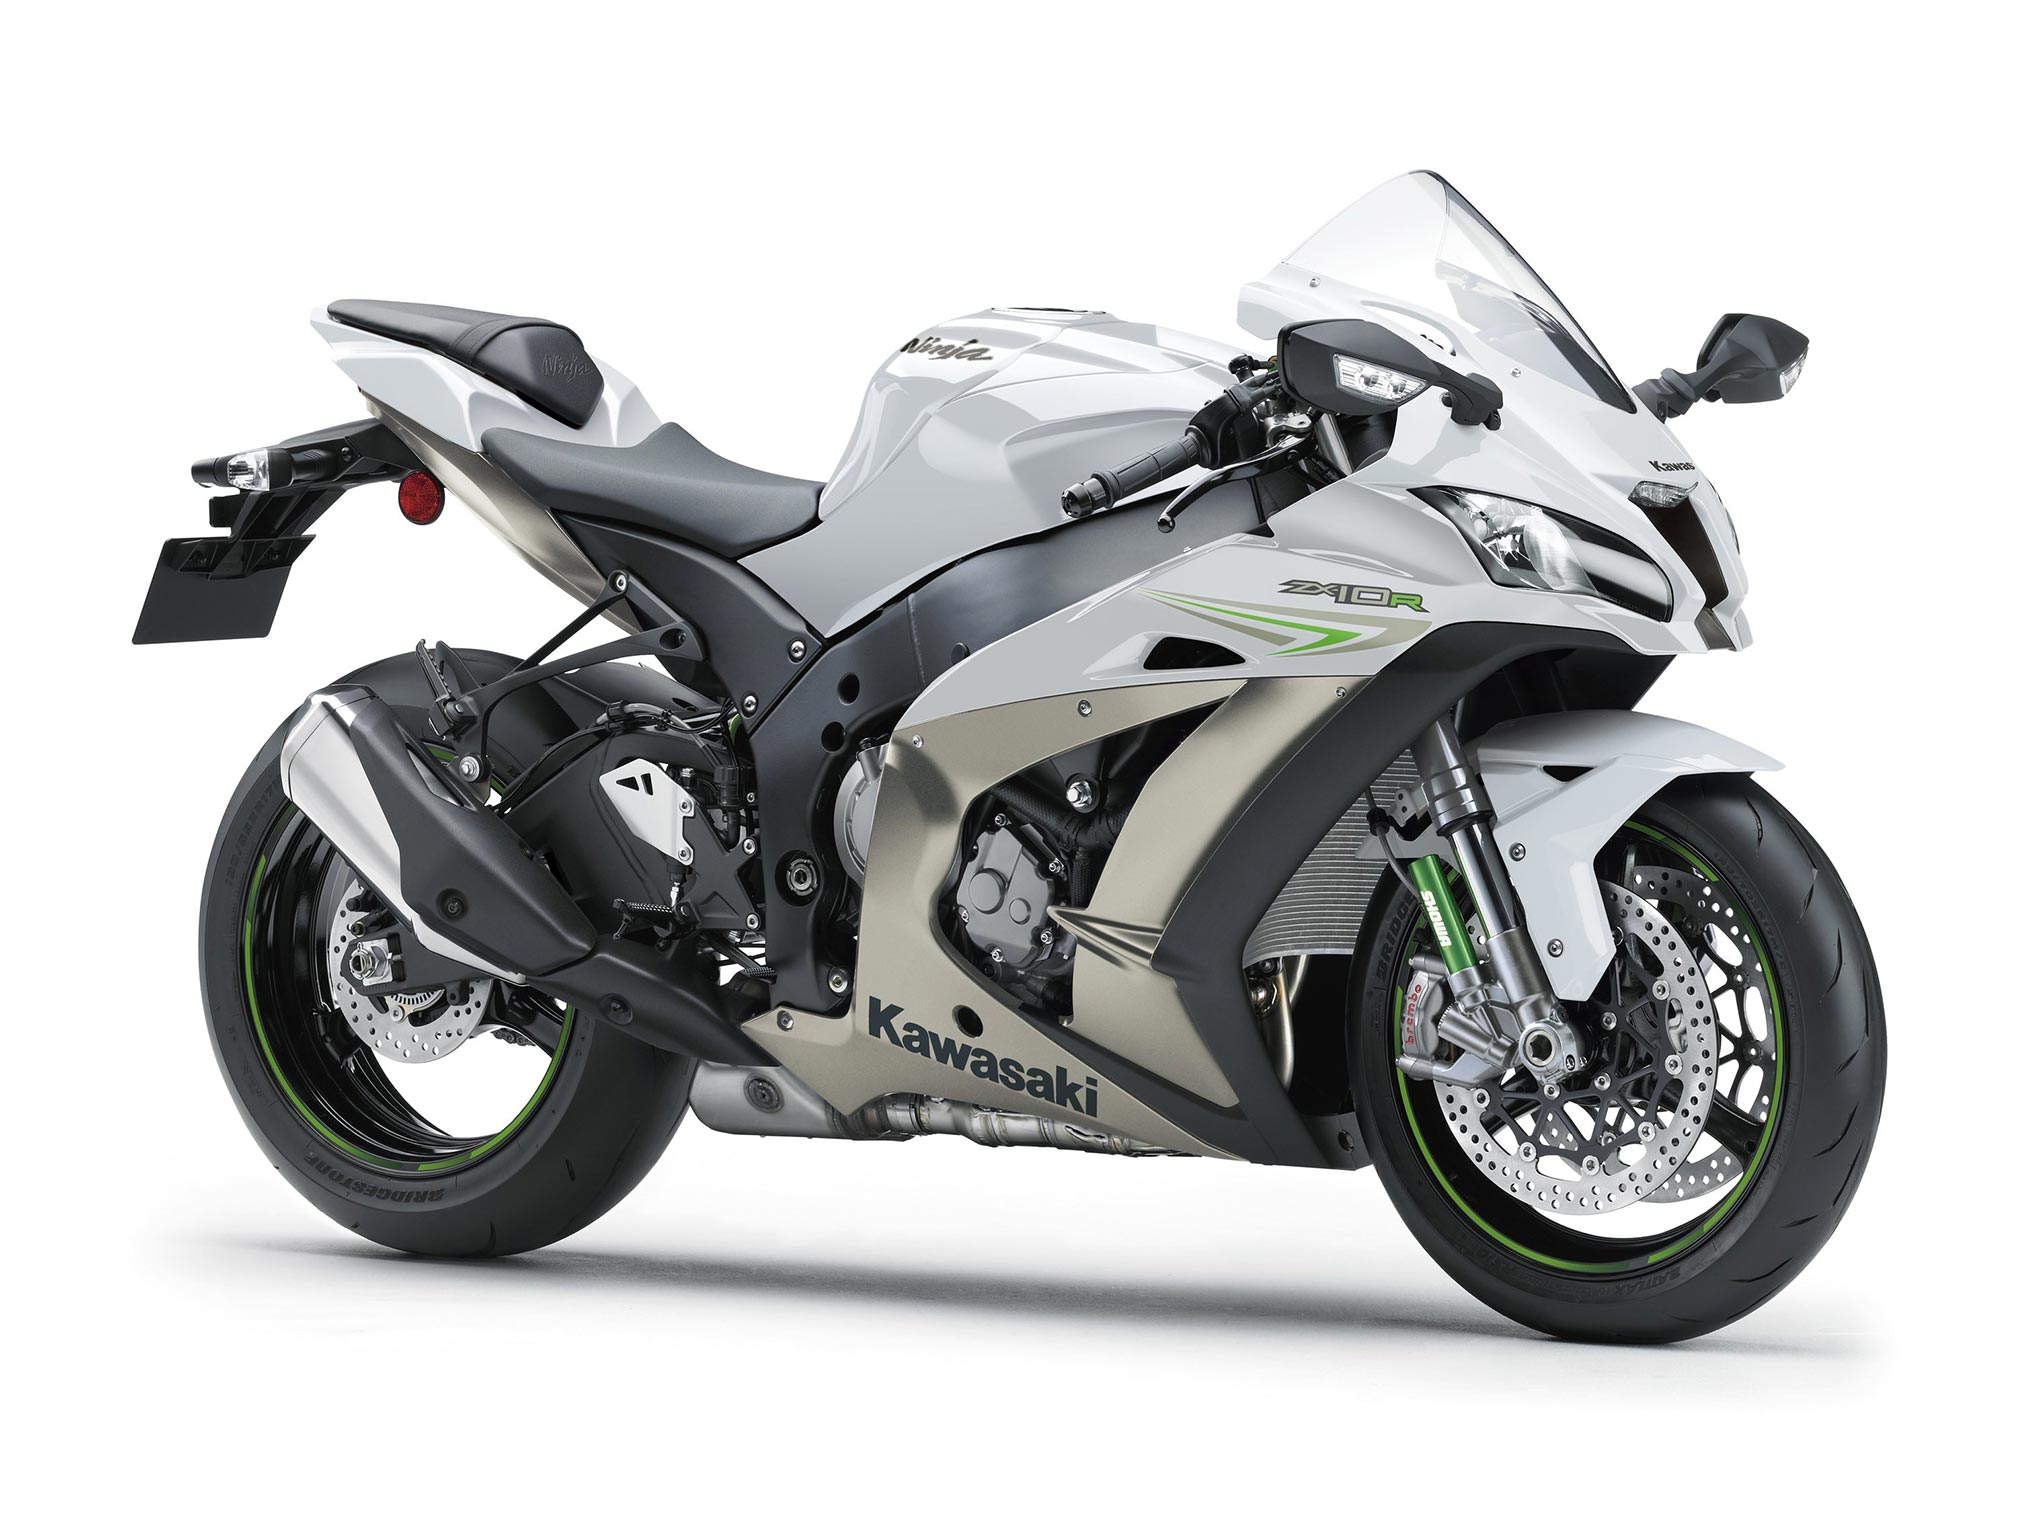 2017 kawasaki ninja zx 10r abs review. Black Bedroom Furniture Sets. Home Design Ideas